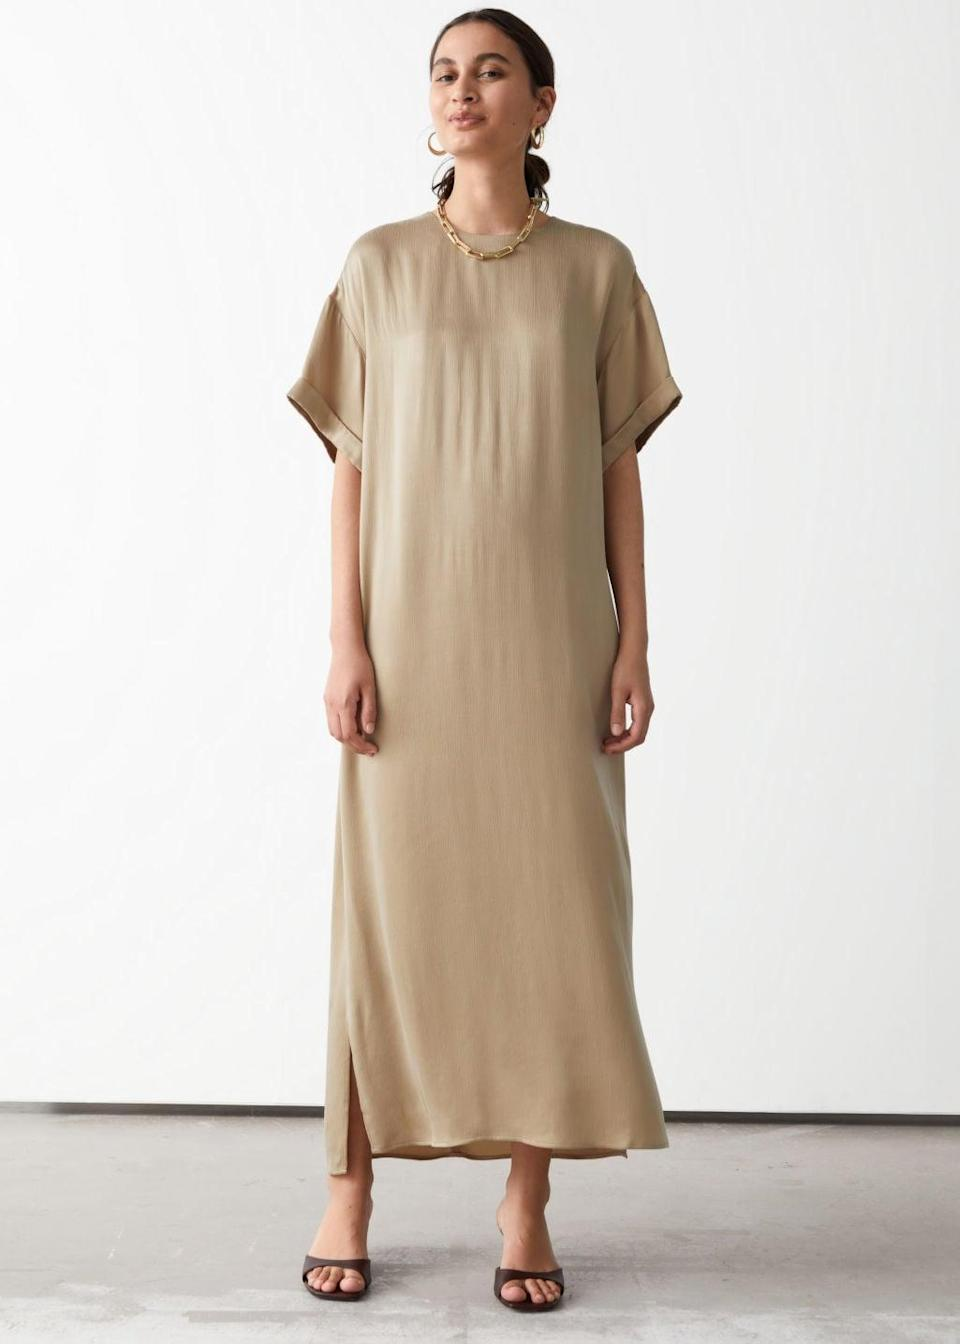 <p>Elevate any future date night with this glossy <span>&amp; Other Stories Cupro Maxi Dress</span> ($129). Style it with a chunky gold necklace and some low-heeled sandals, and you're ready for your dinner, museum date, or anniversary celebration.</p>